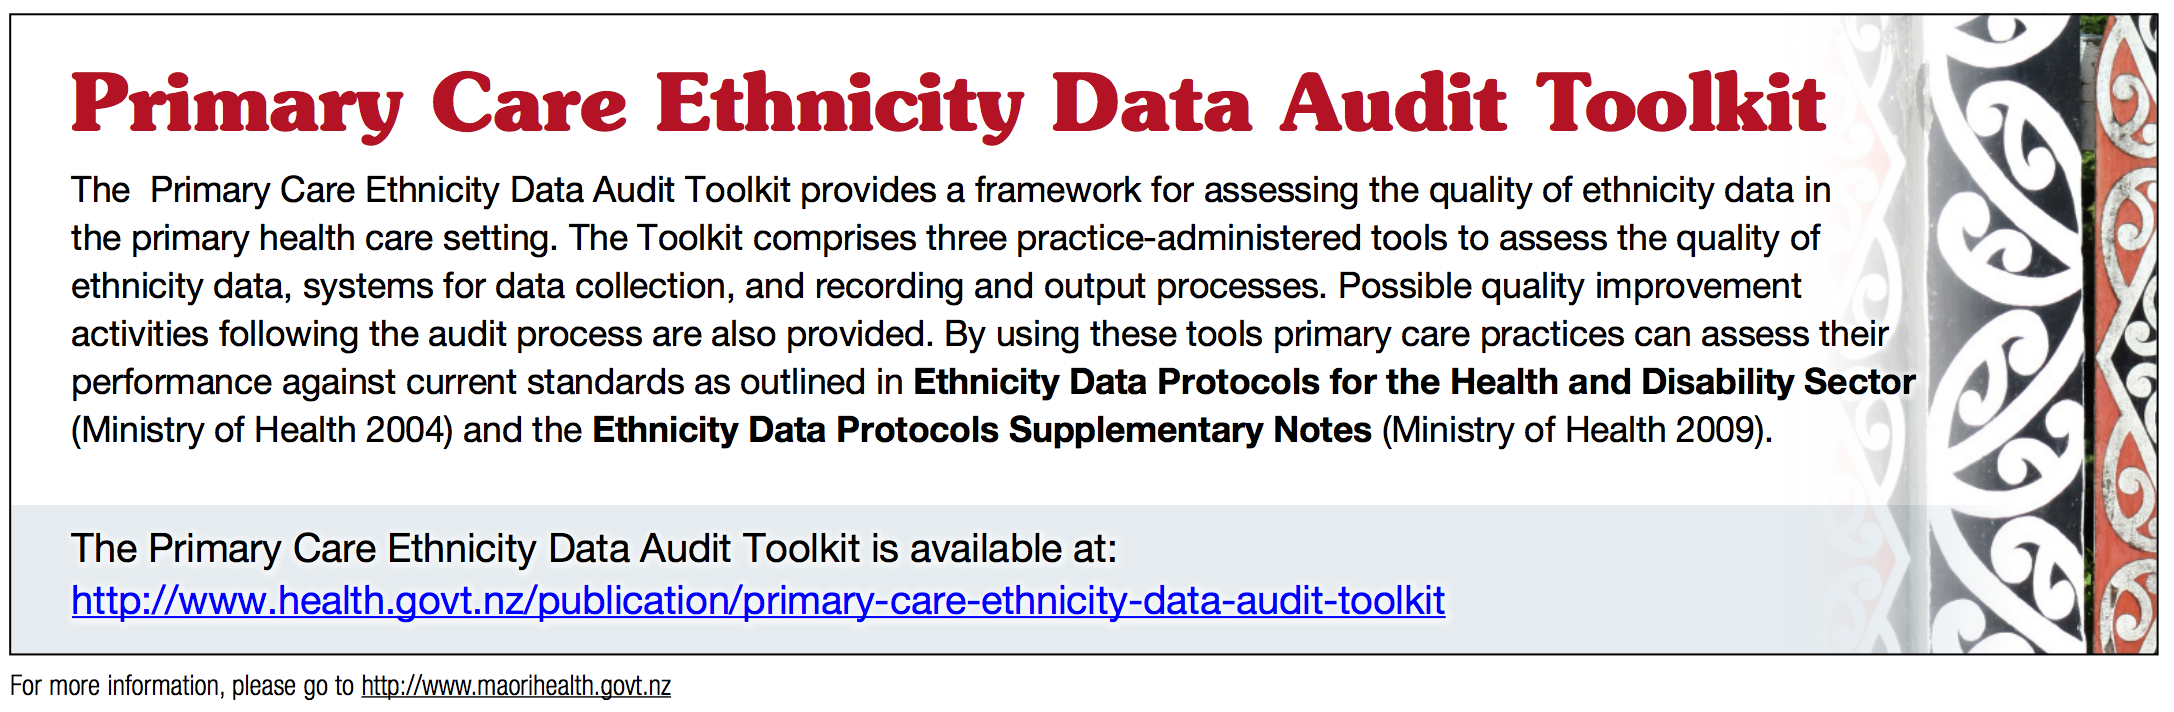 http://www.health.govt.nz/publication/primary-care-ethnicity-data-audit-toolkit